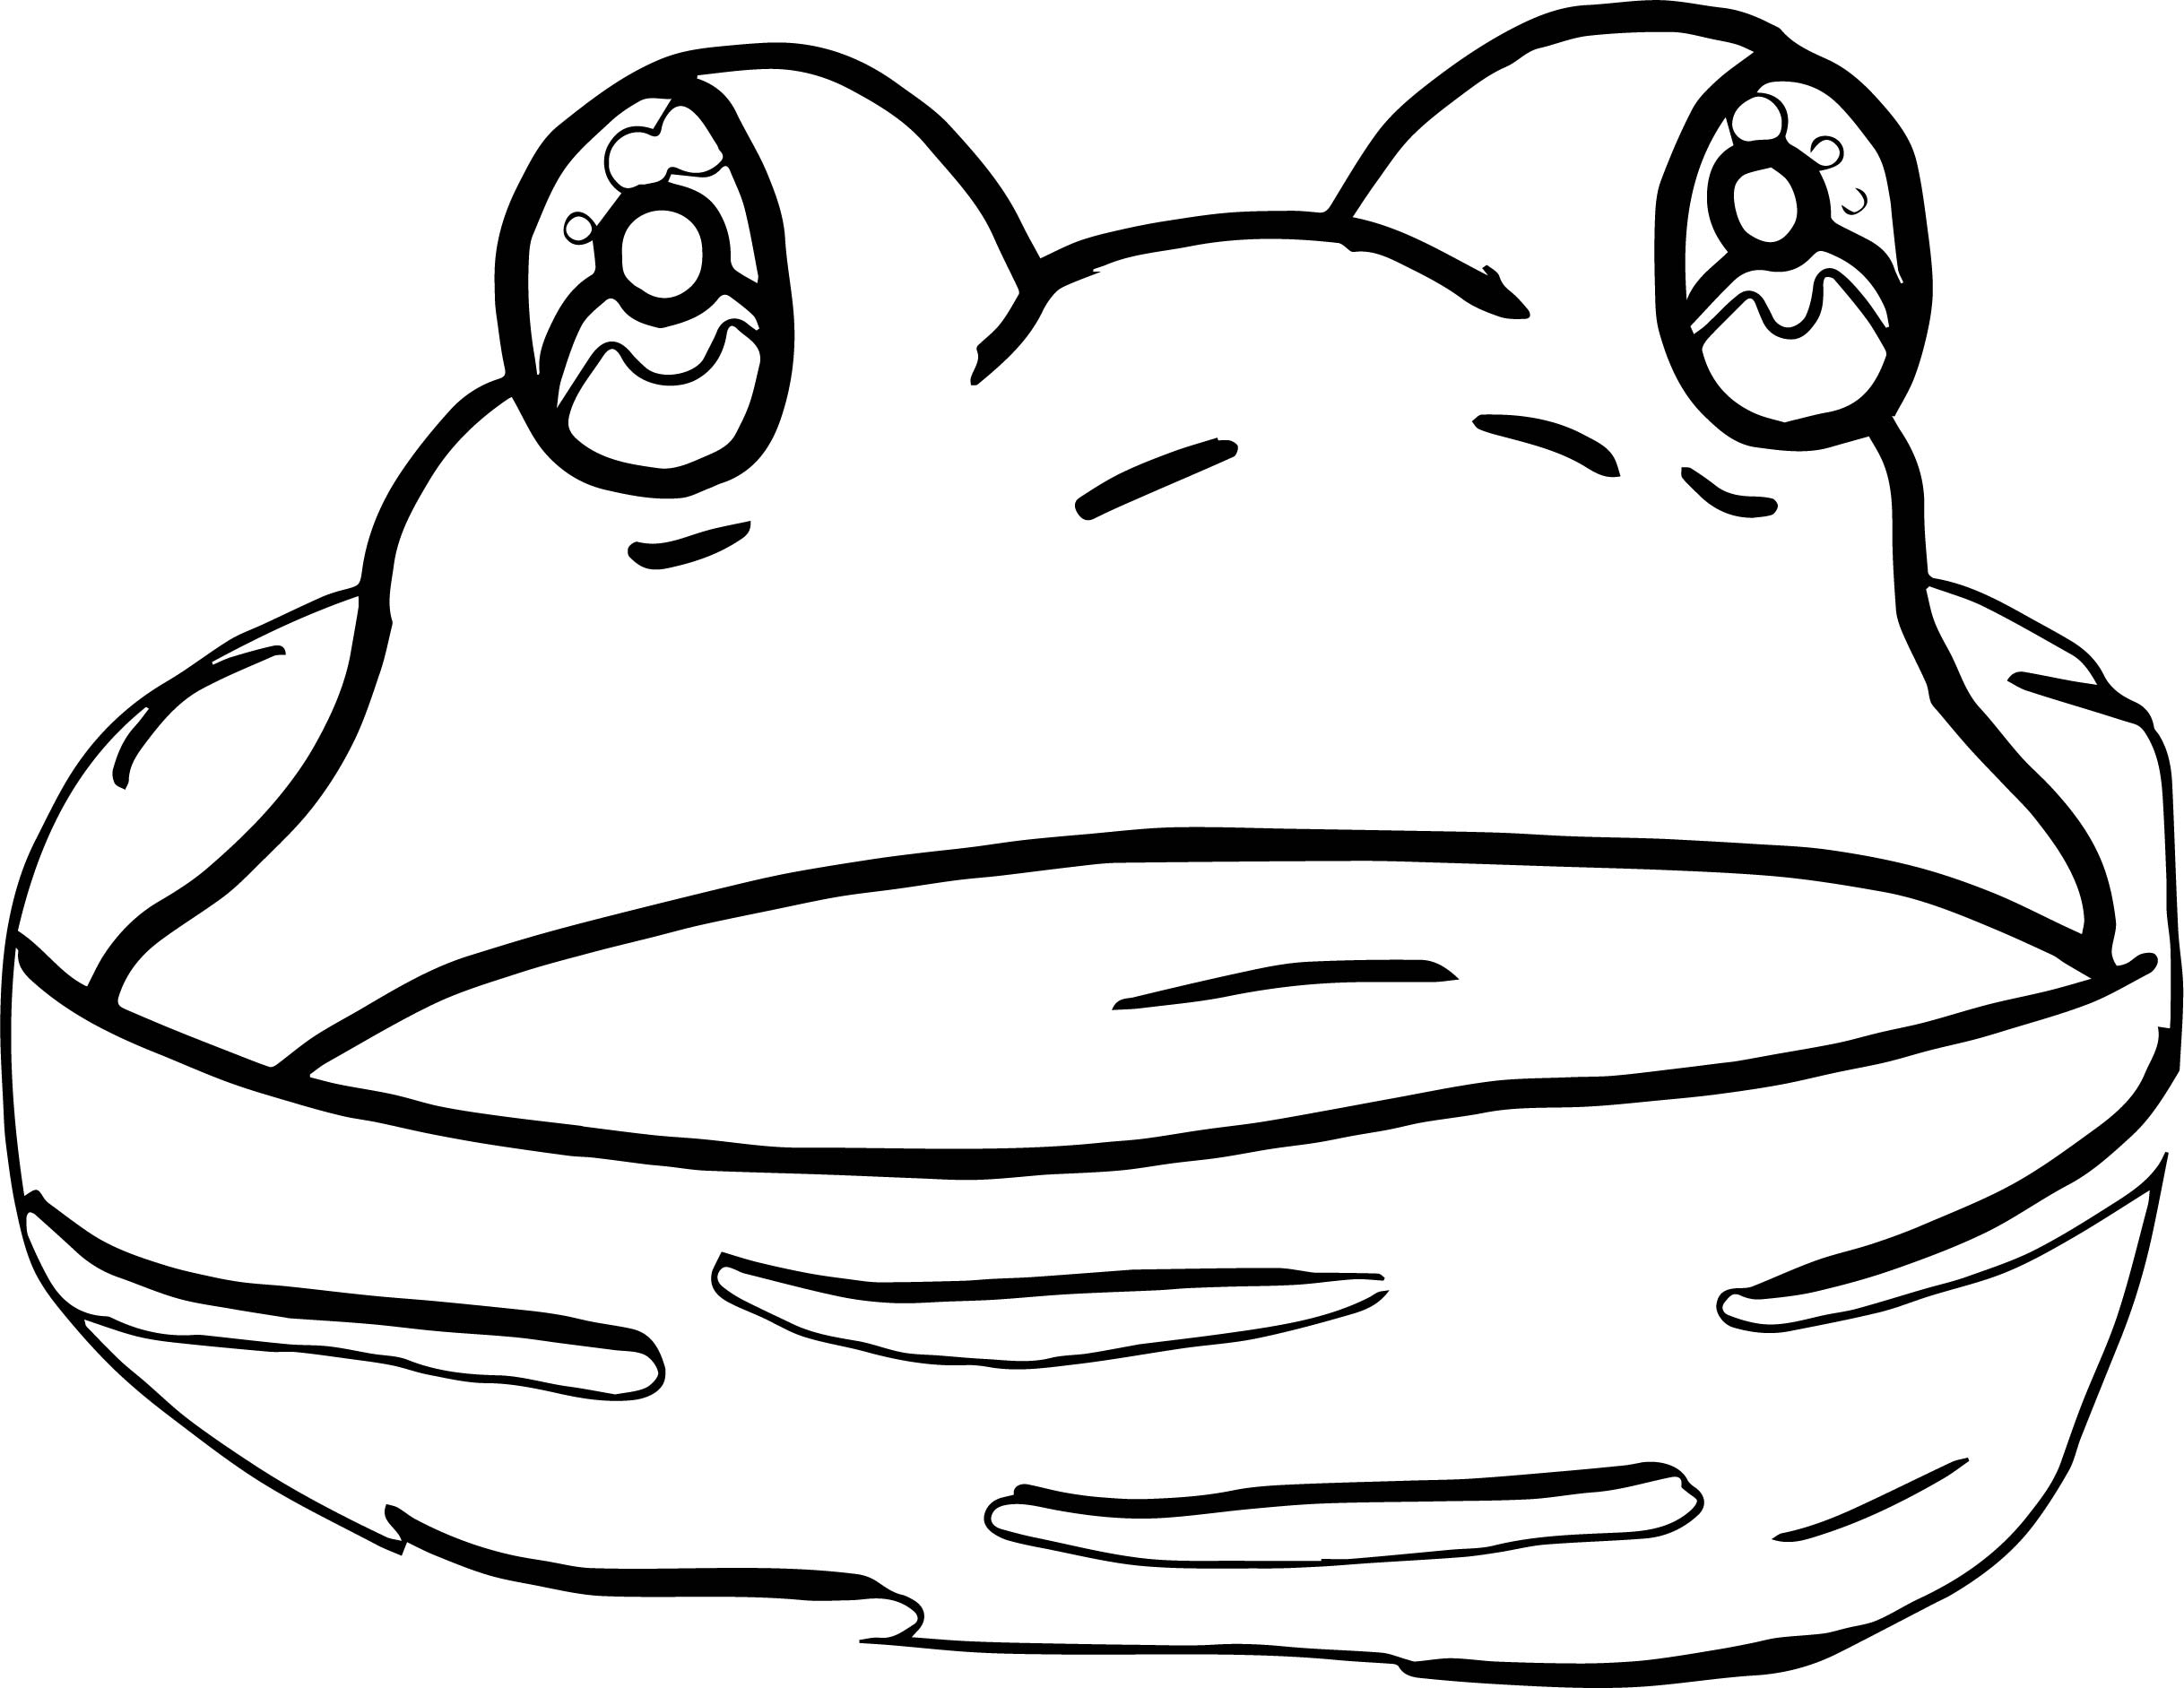 Frog Coloring Page 100